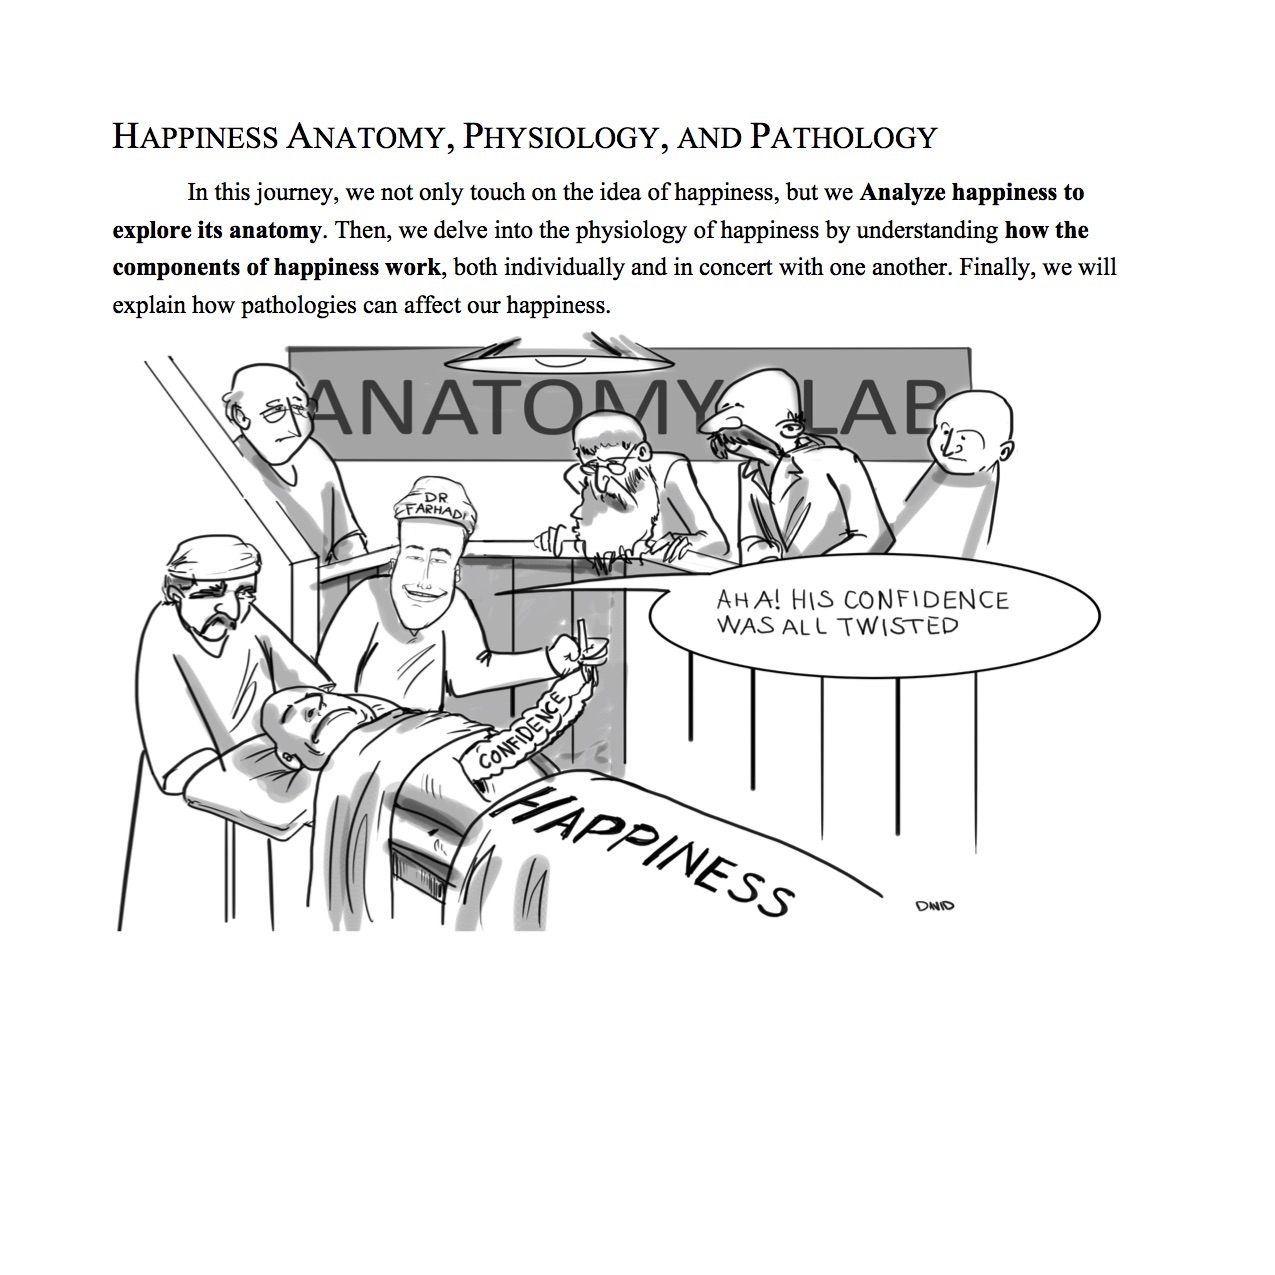 Happiness-Book-V70 final first  chapter page 9.jpg